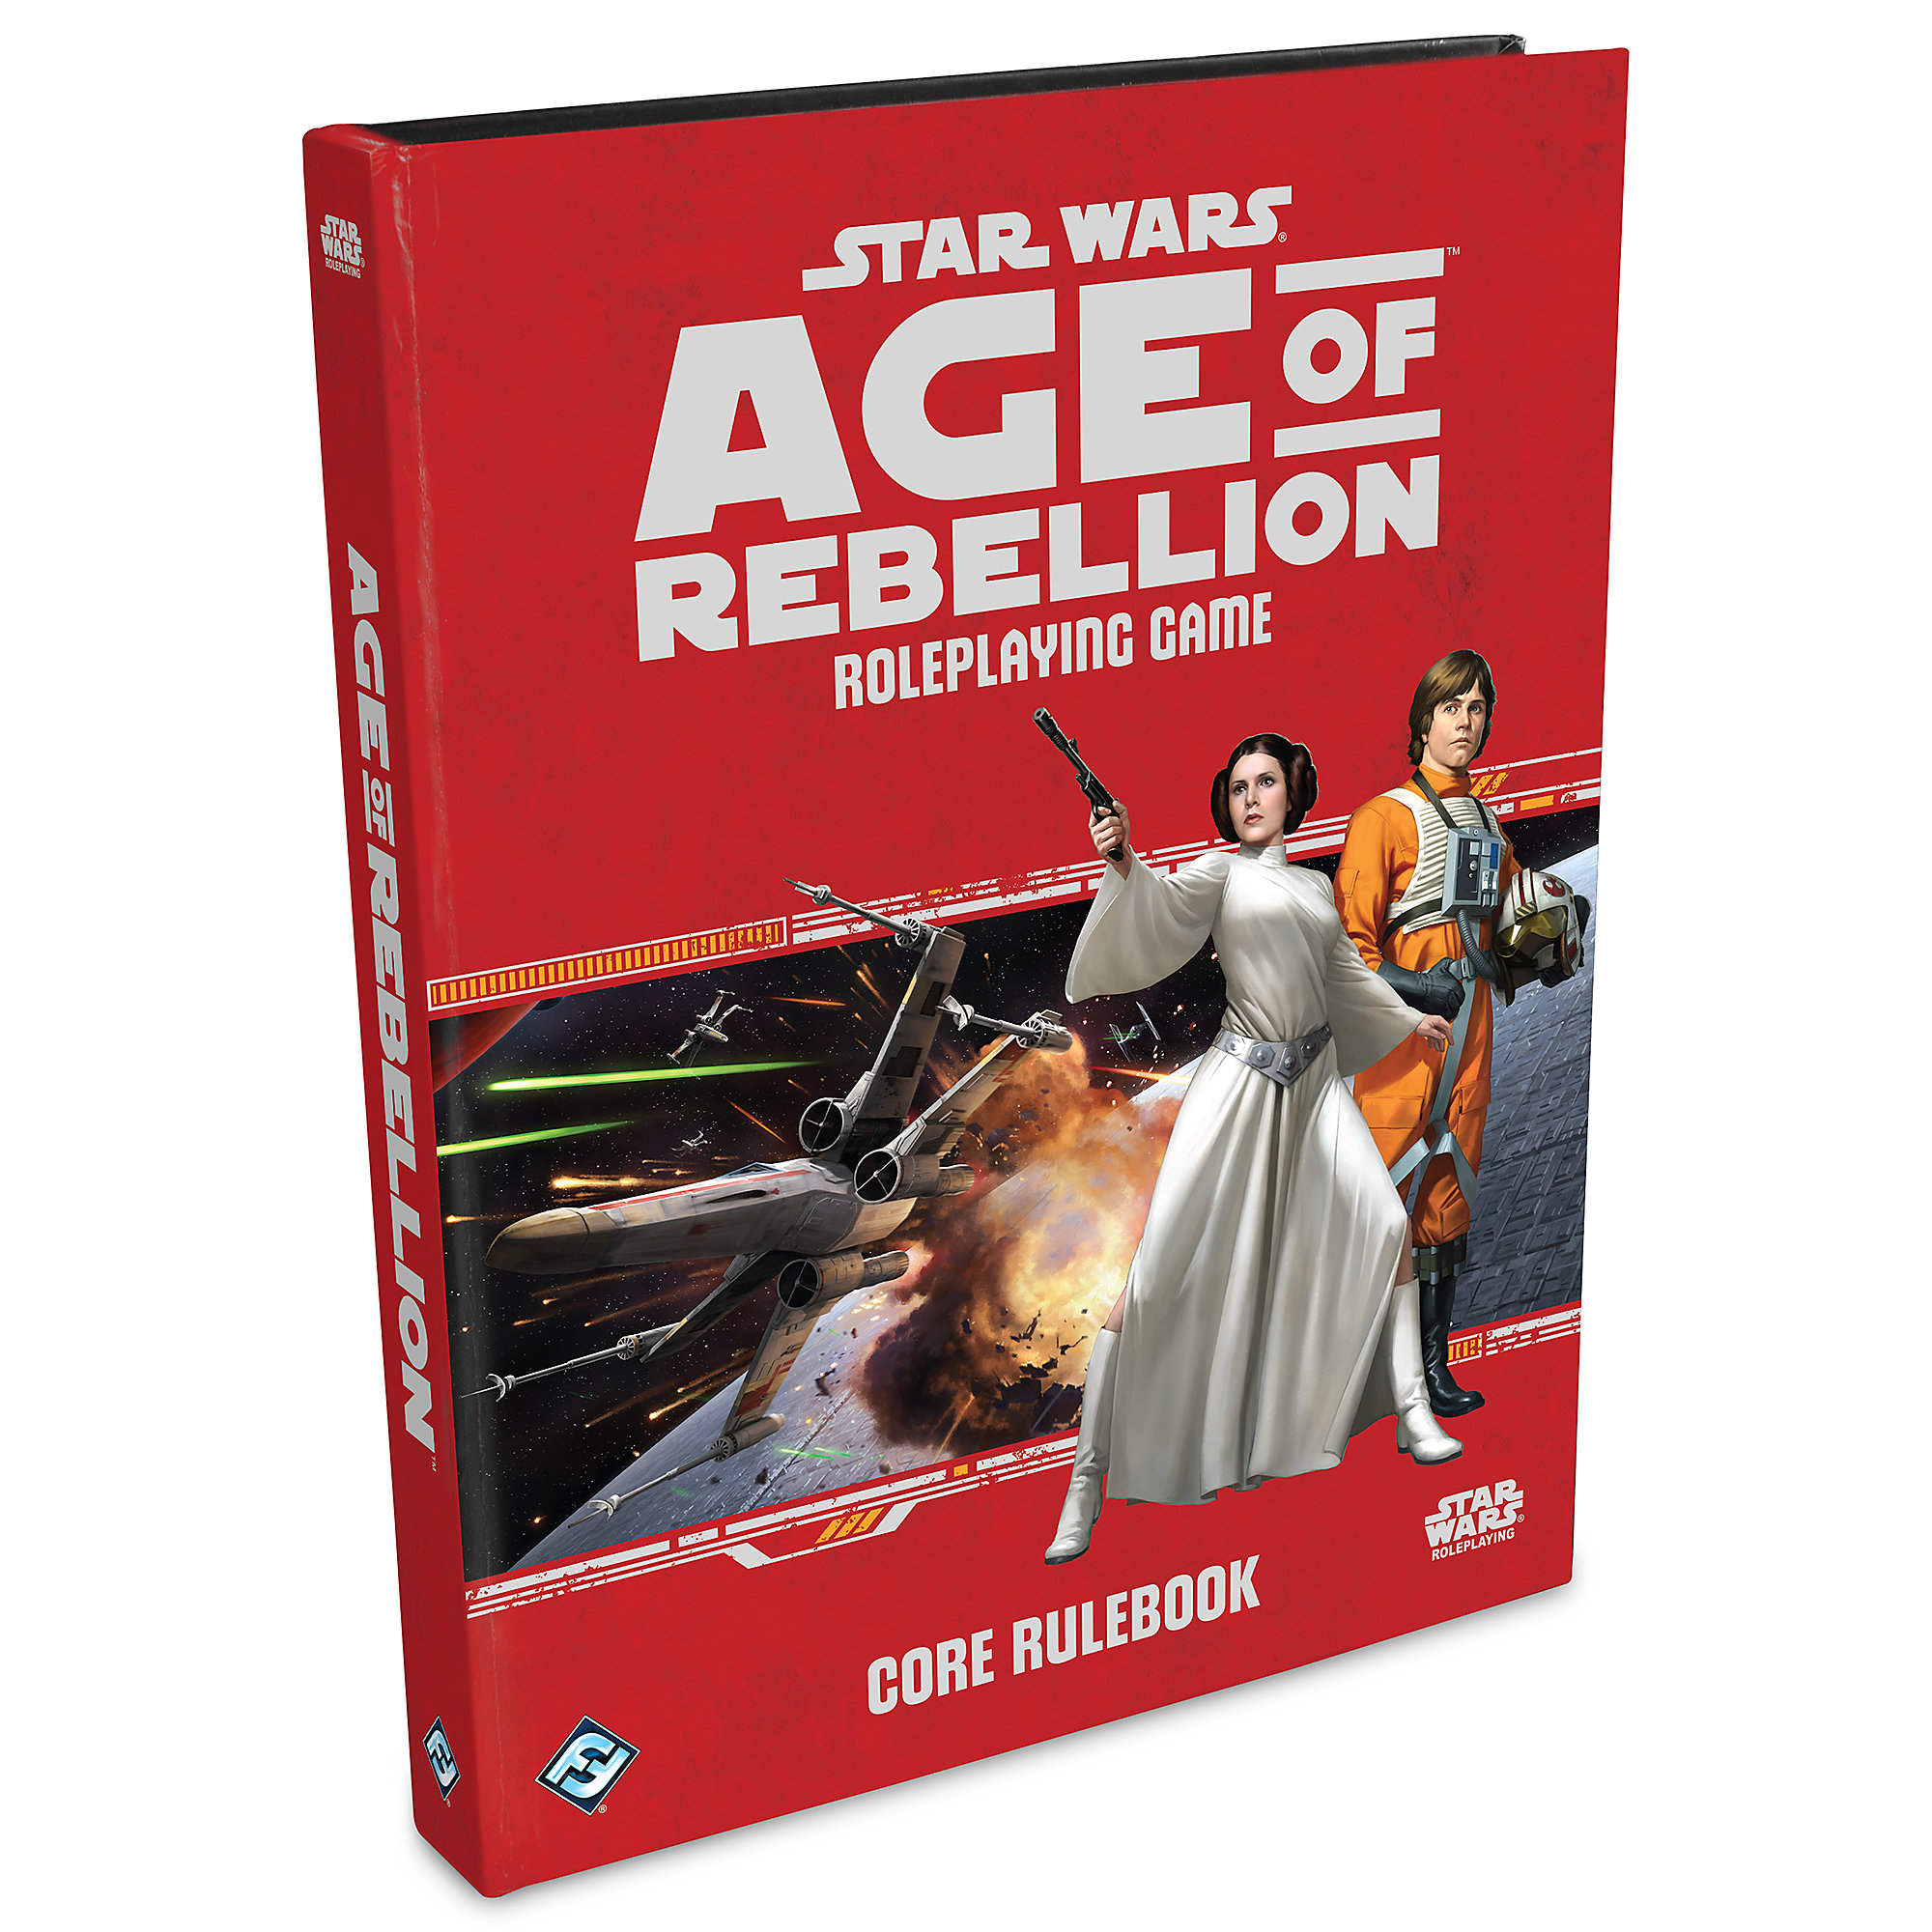 Star Wars: Age of Rebellion Roleplaying Game - Core Rulebook